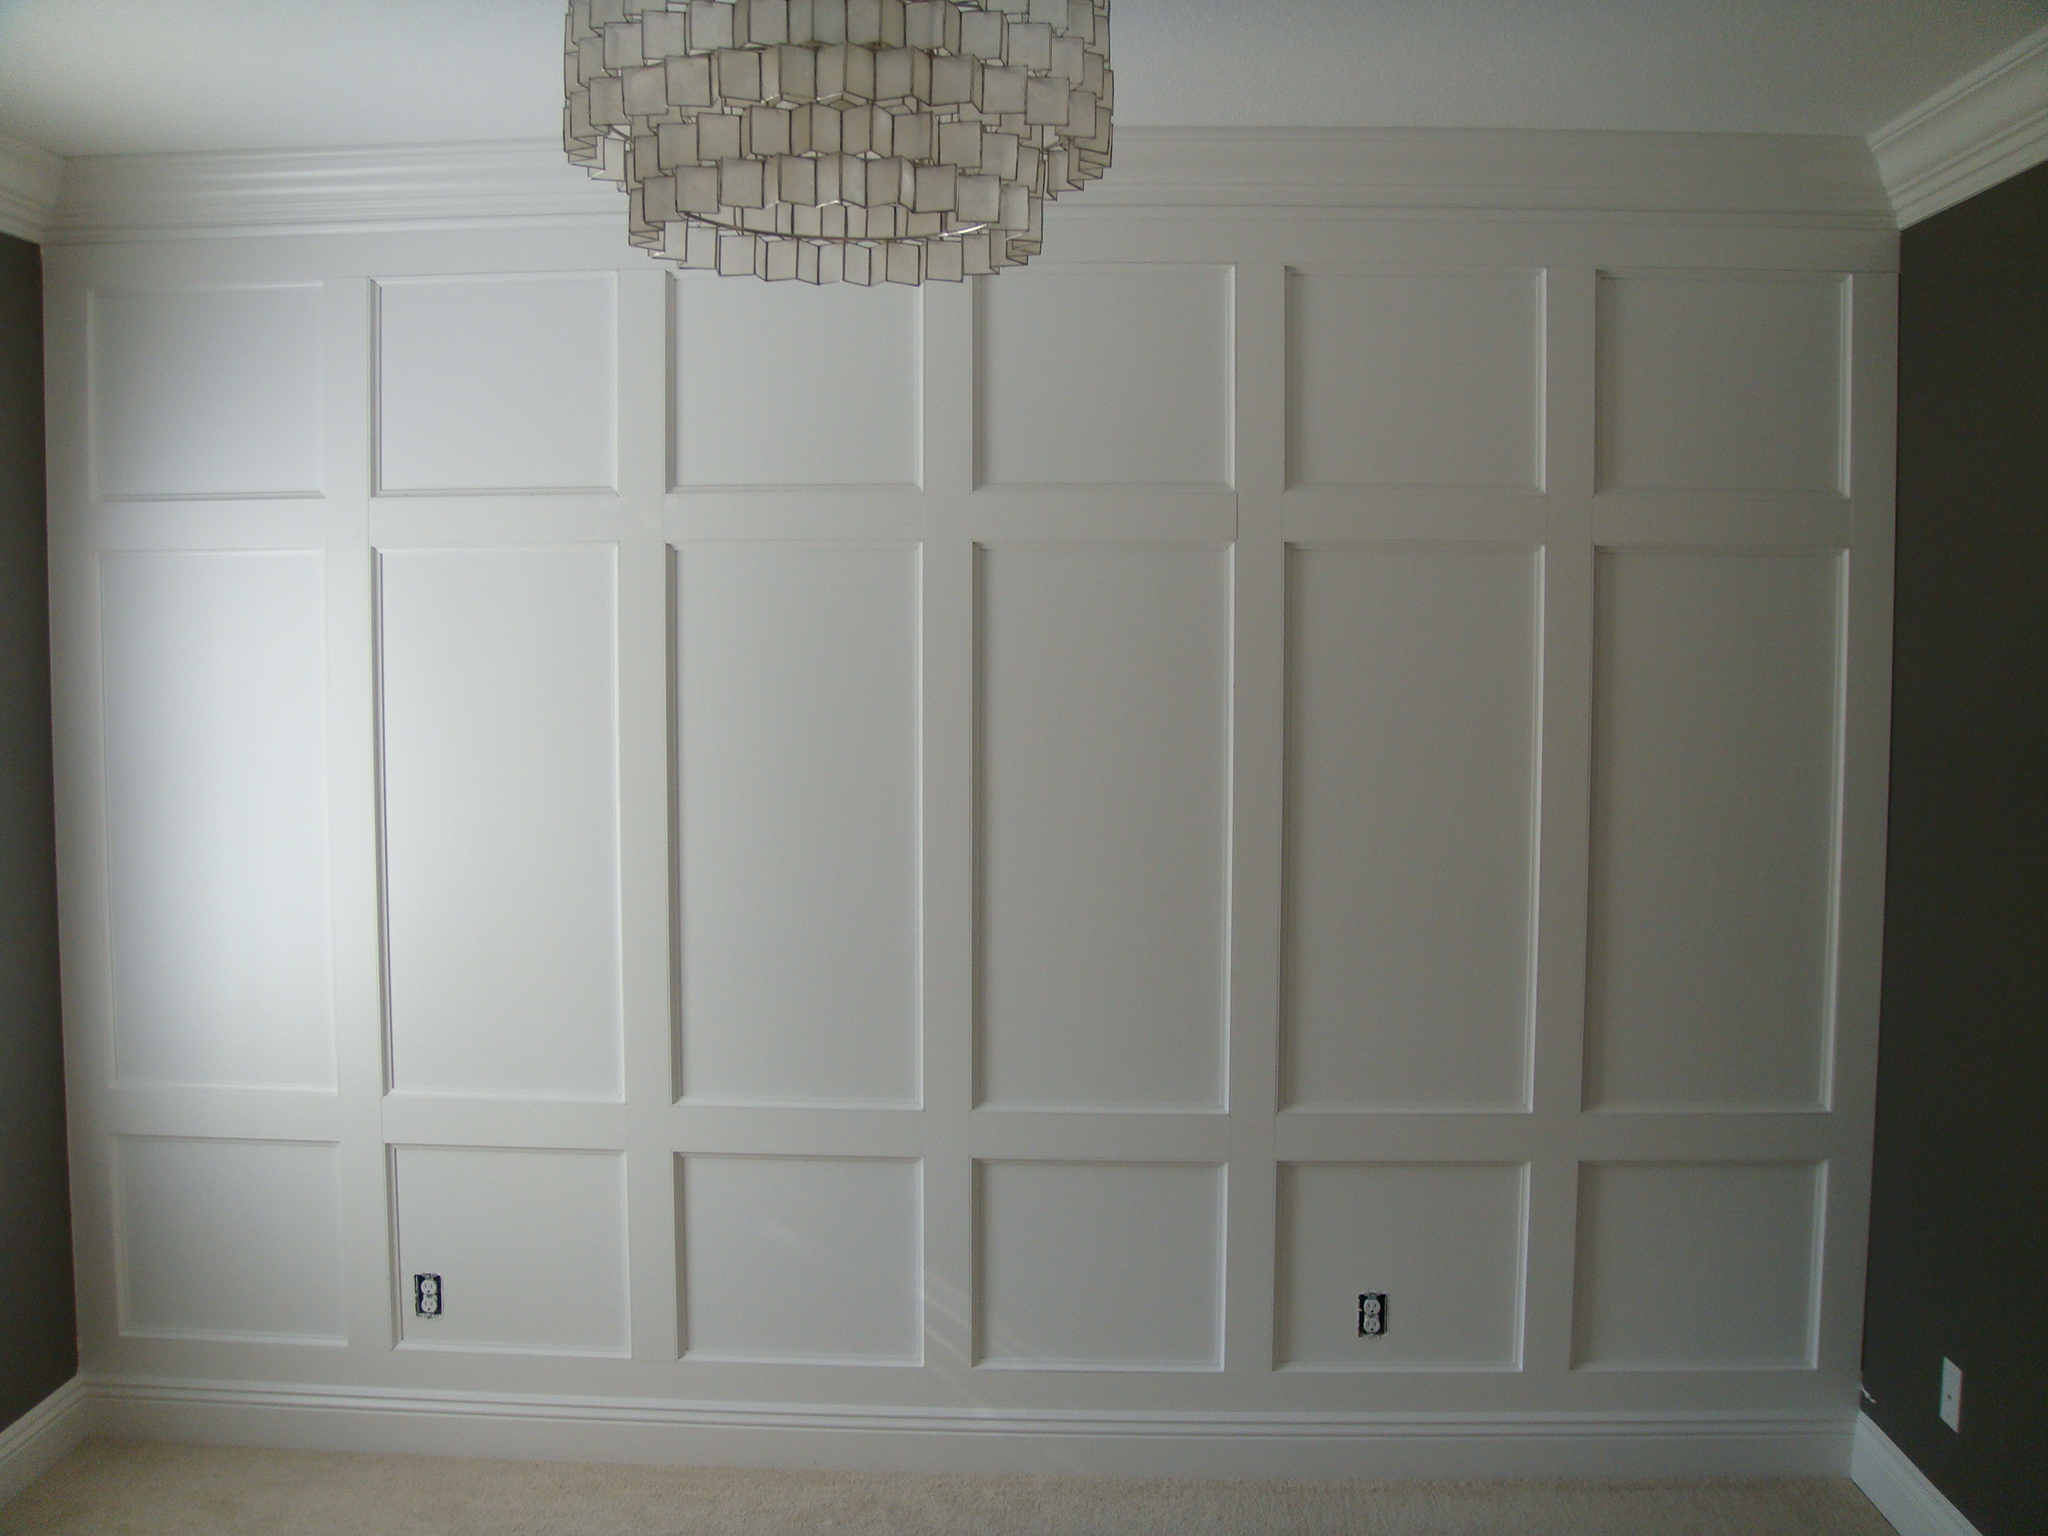 Bathroom Decorating Ideas Pinterest Ana White Wainscoting Feature Wall Diy Projects